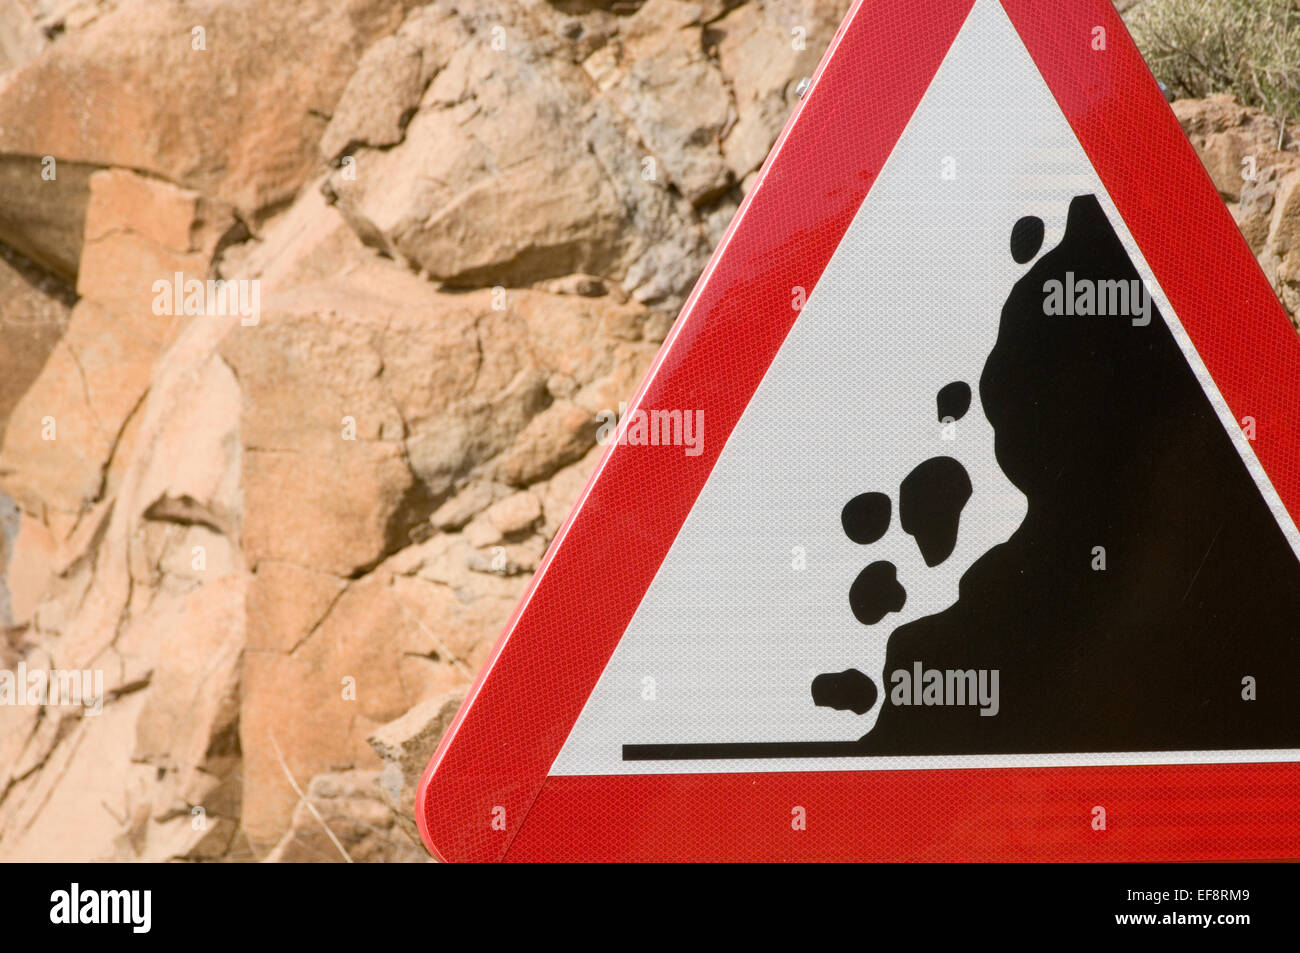 falling rock rocks road sign signs roadsign roadsigns rolling stone stones cliff cliffs  warning warn red triangle - Stock Image